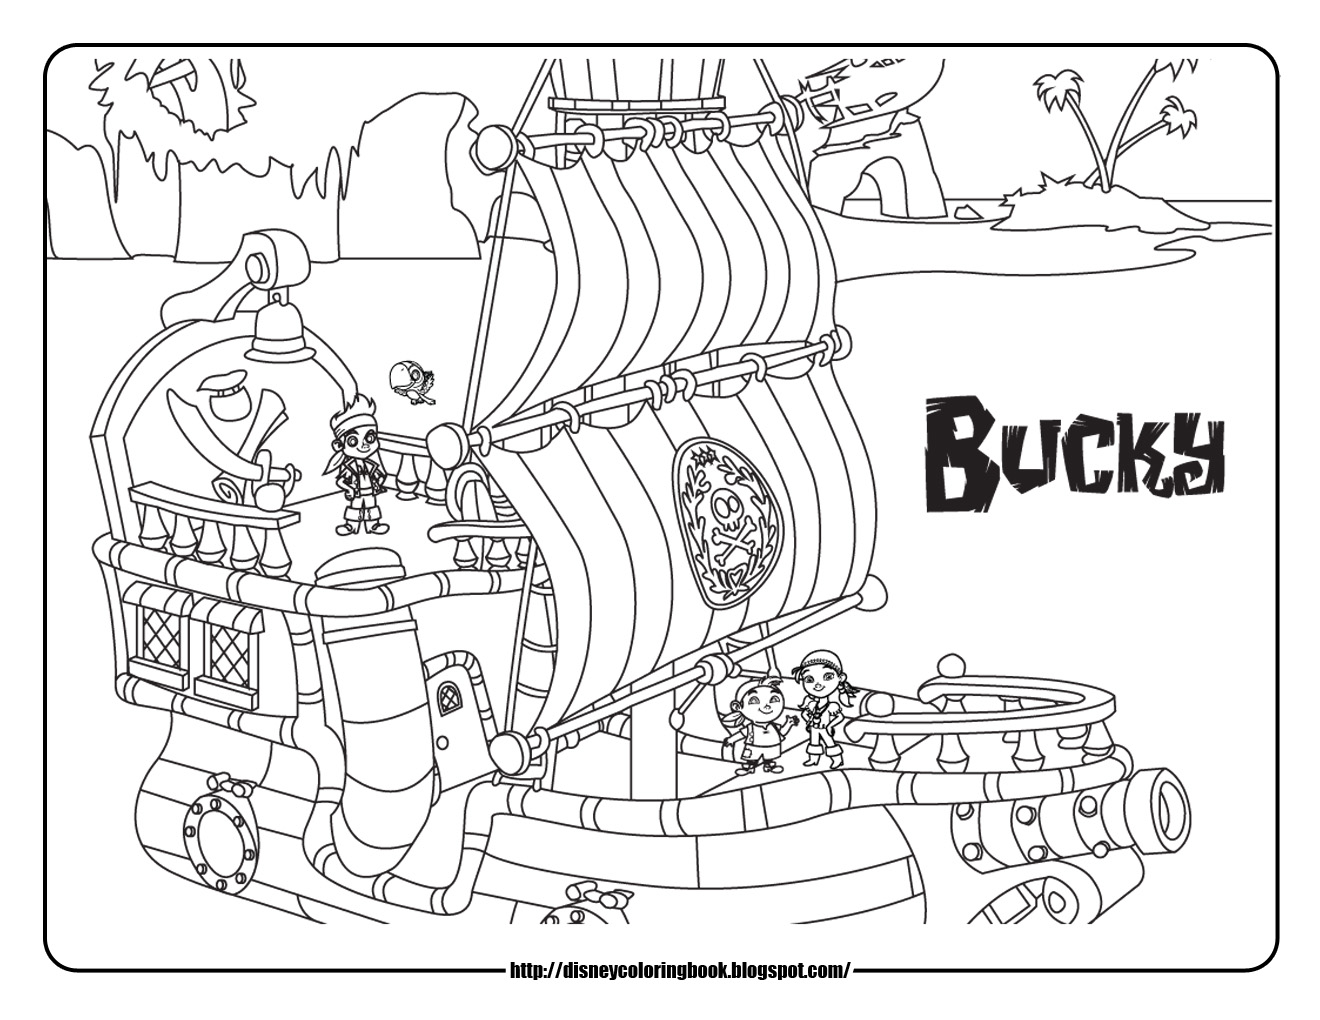 Jake And The Neverland Pirates 2 Free Disney Coloring Sheets Jake And The Neverland Coloring Pages To Print